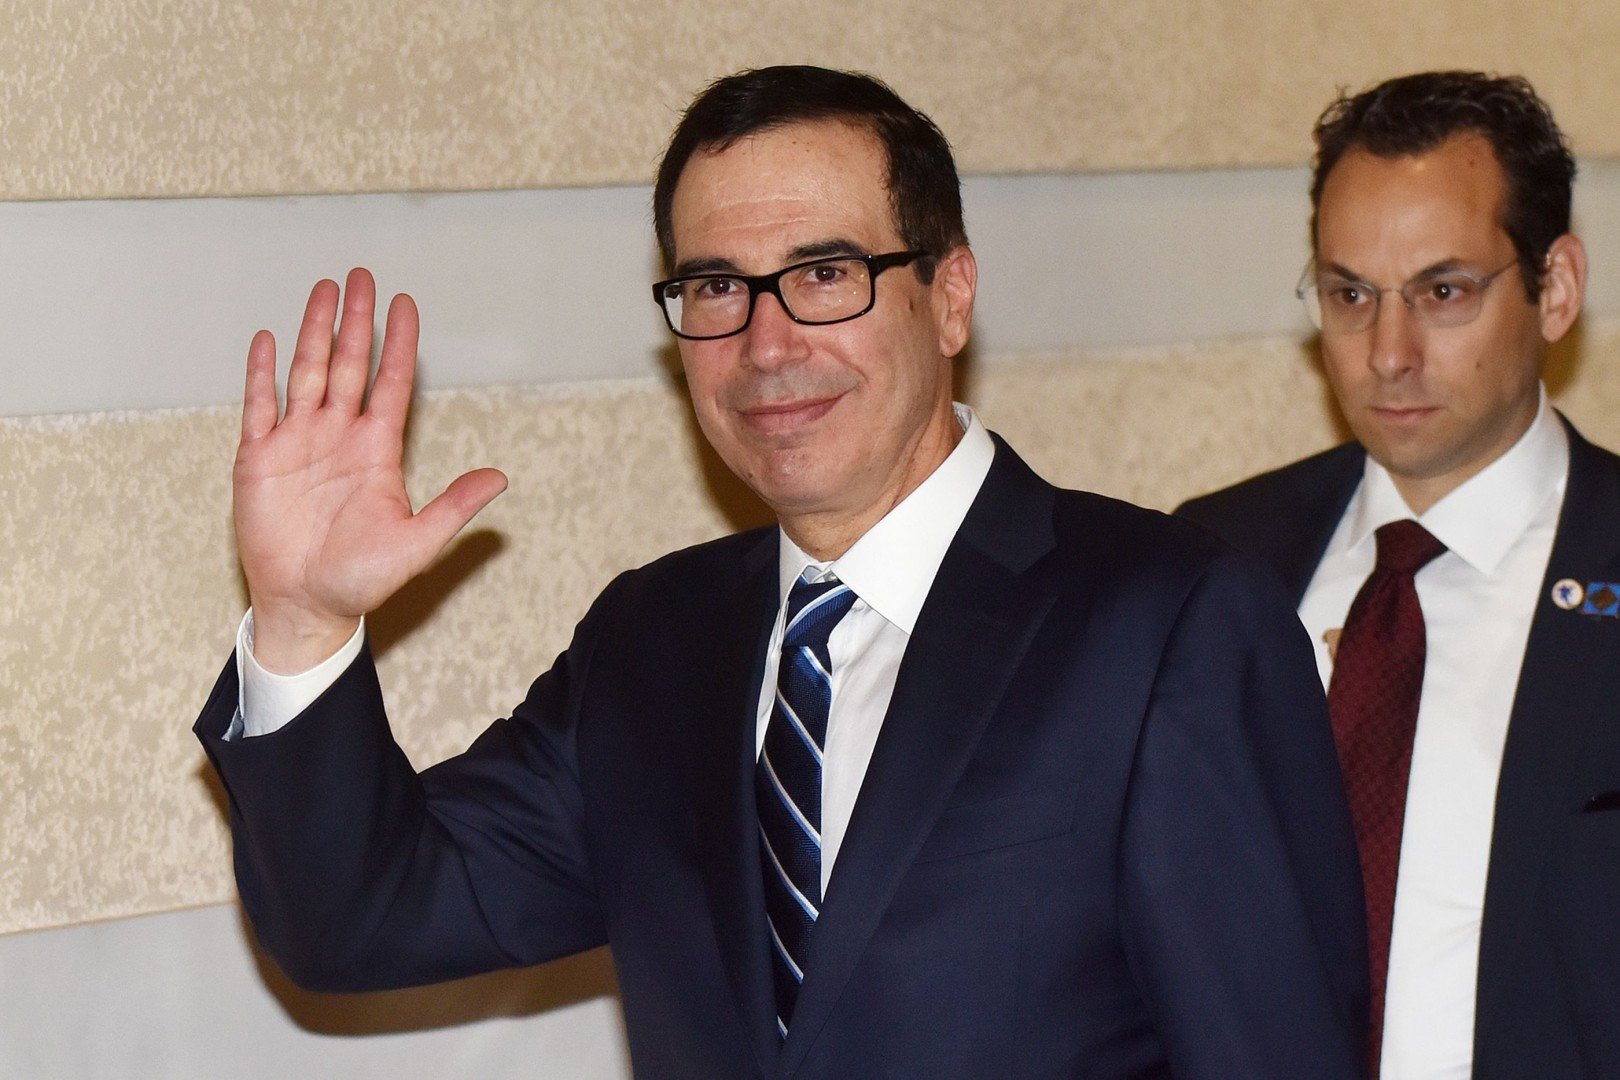 US Treasury Secretary Steven Mnuchin (L) waves as he leaves a hotel with members of a negotiation team in Beijing on February 13, 2019. - Mnuchin will be joined by US Trade Representative Robert Lighthizer as well as David Malpass, President Donald Trump's nominee to lead the World Bank, in negotiations with China set for February 14 and 15. (Photo by Greg Baker / AFP)